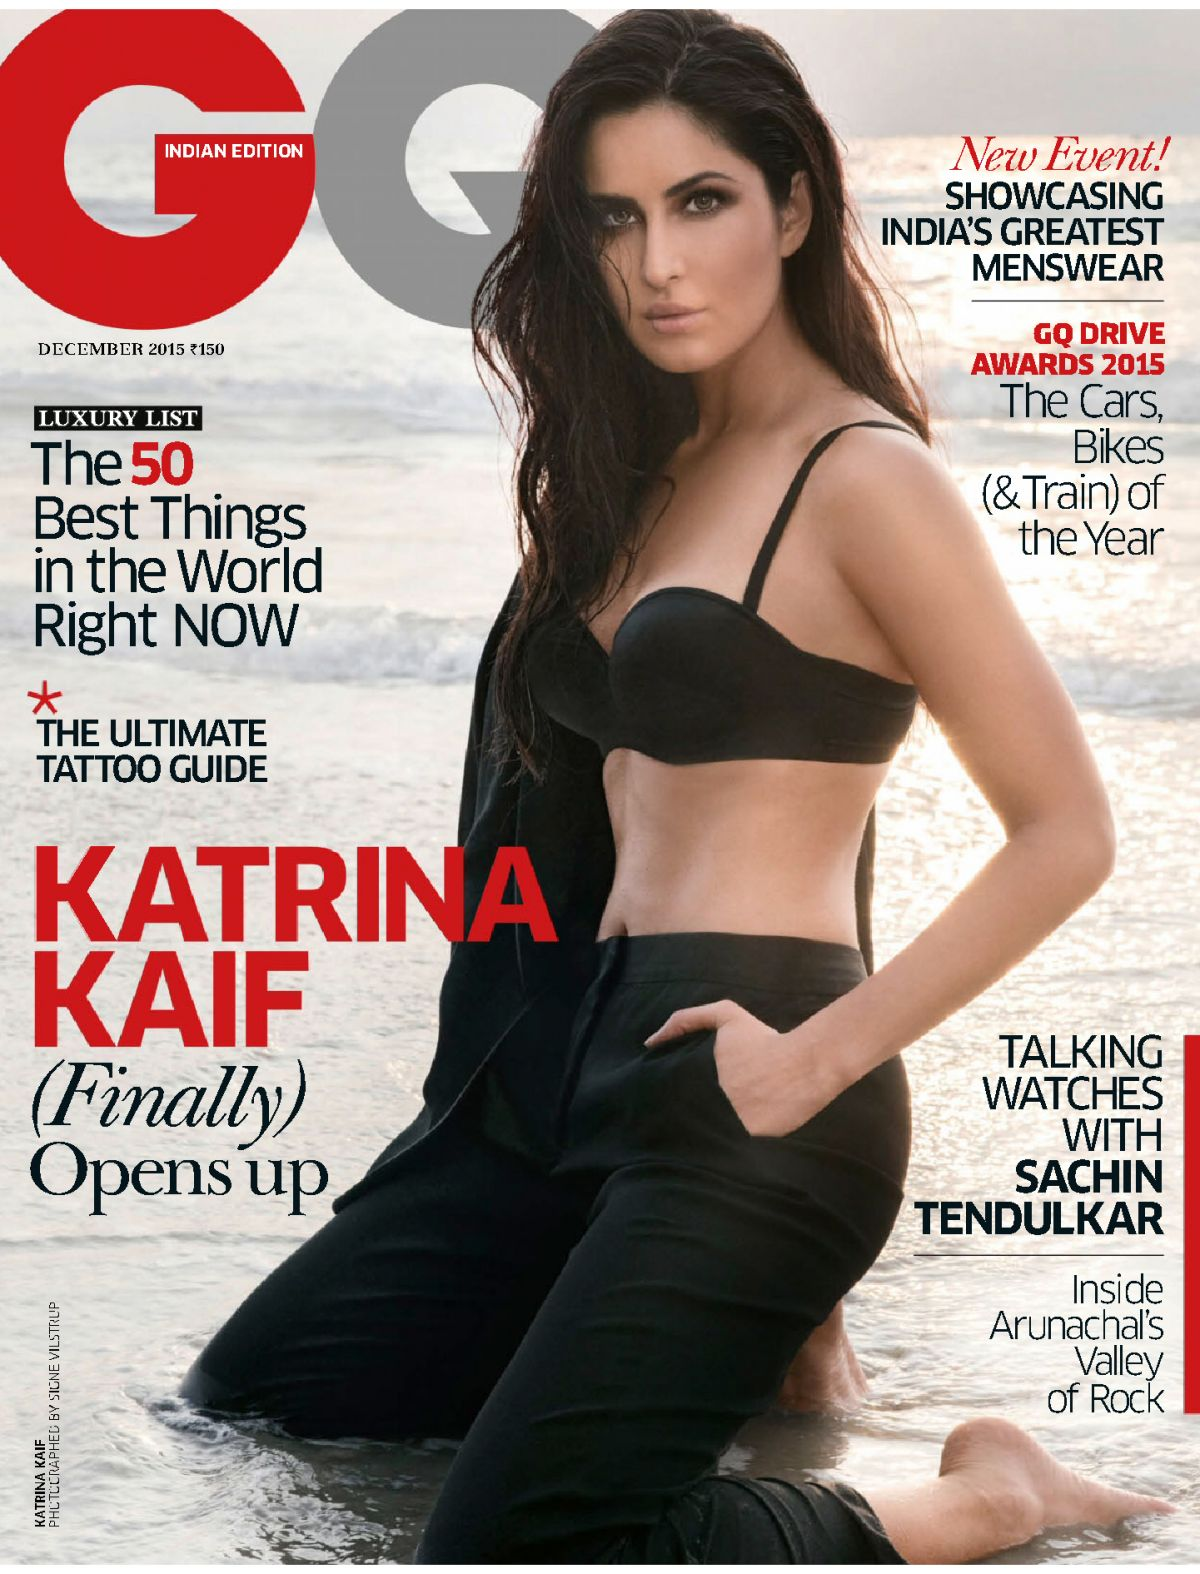 KATRINA KAIF in GQ Magazine, India December 2015 Issue